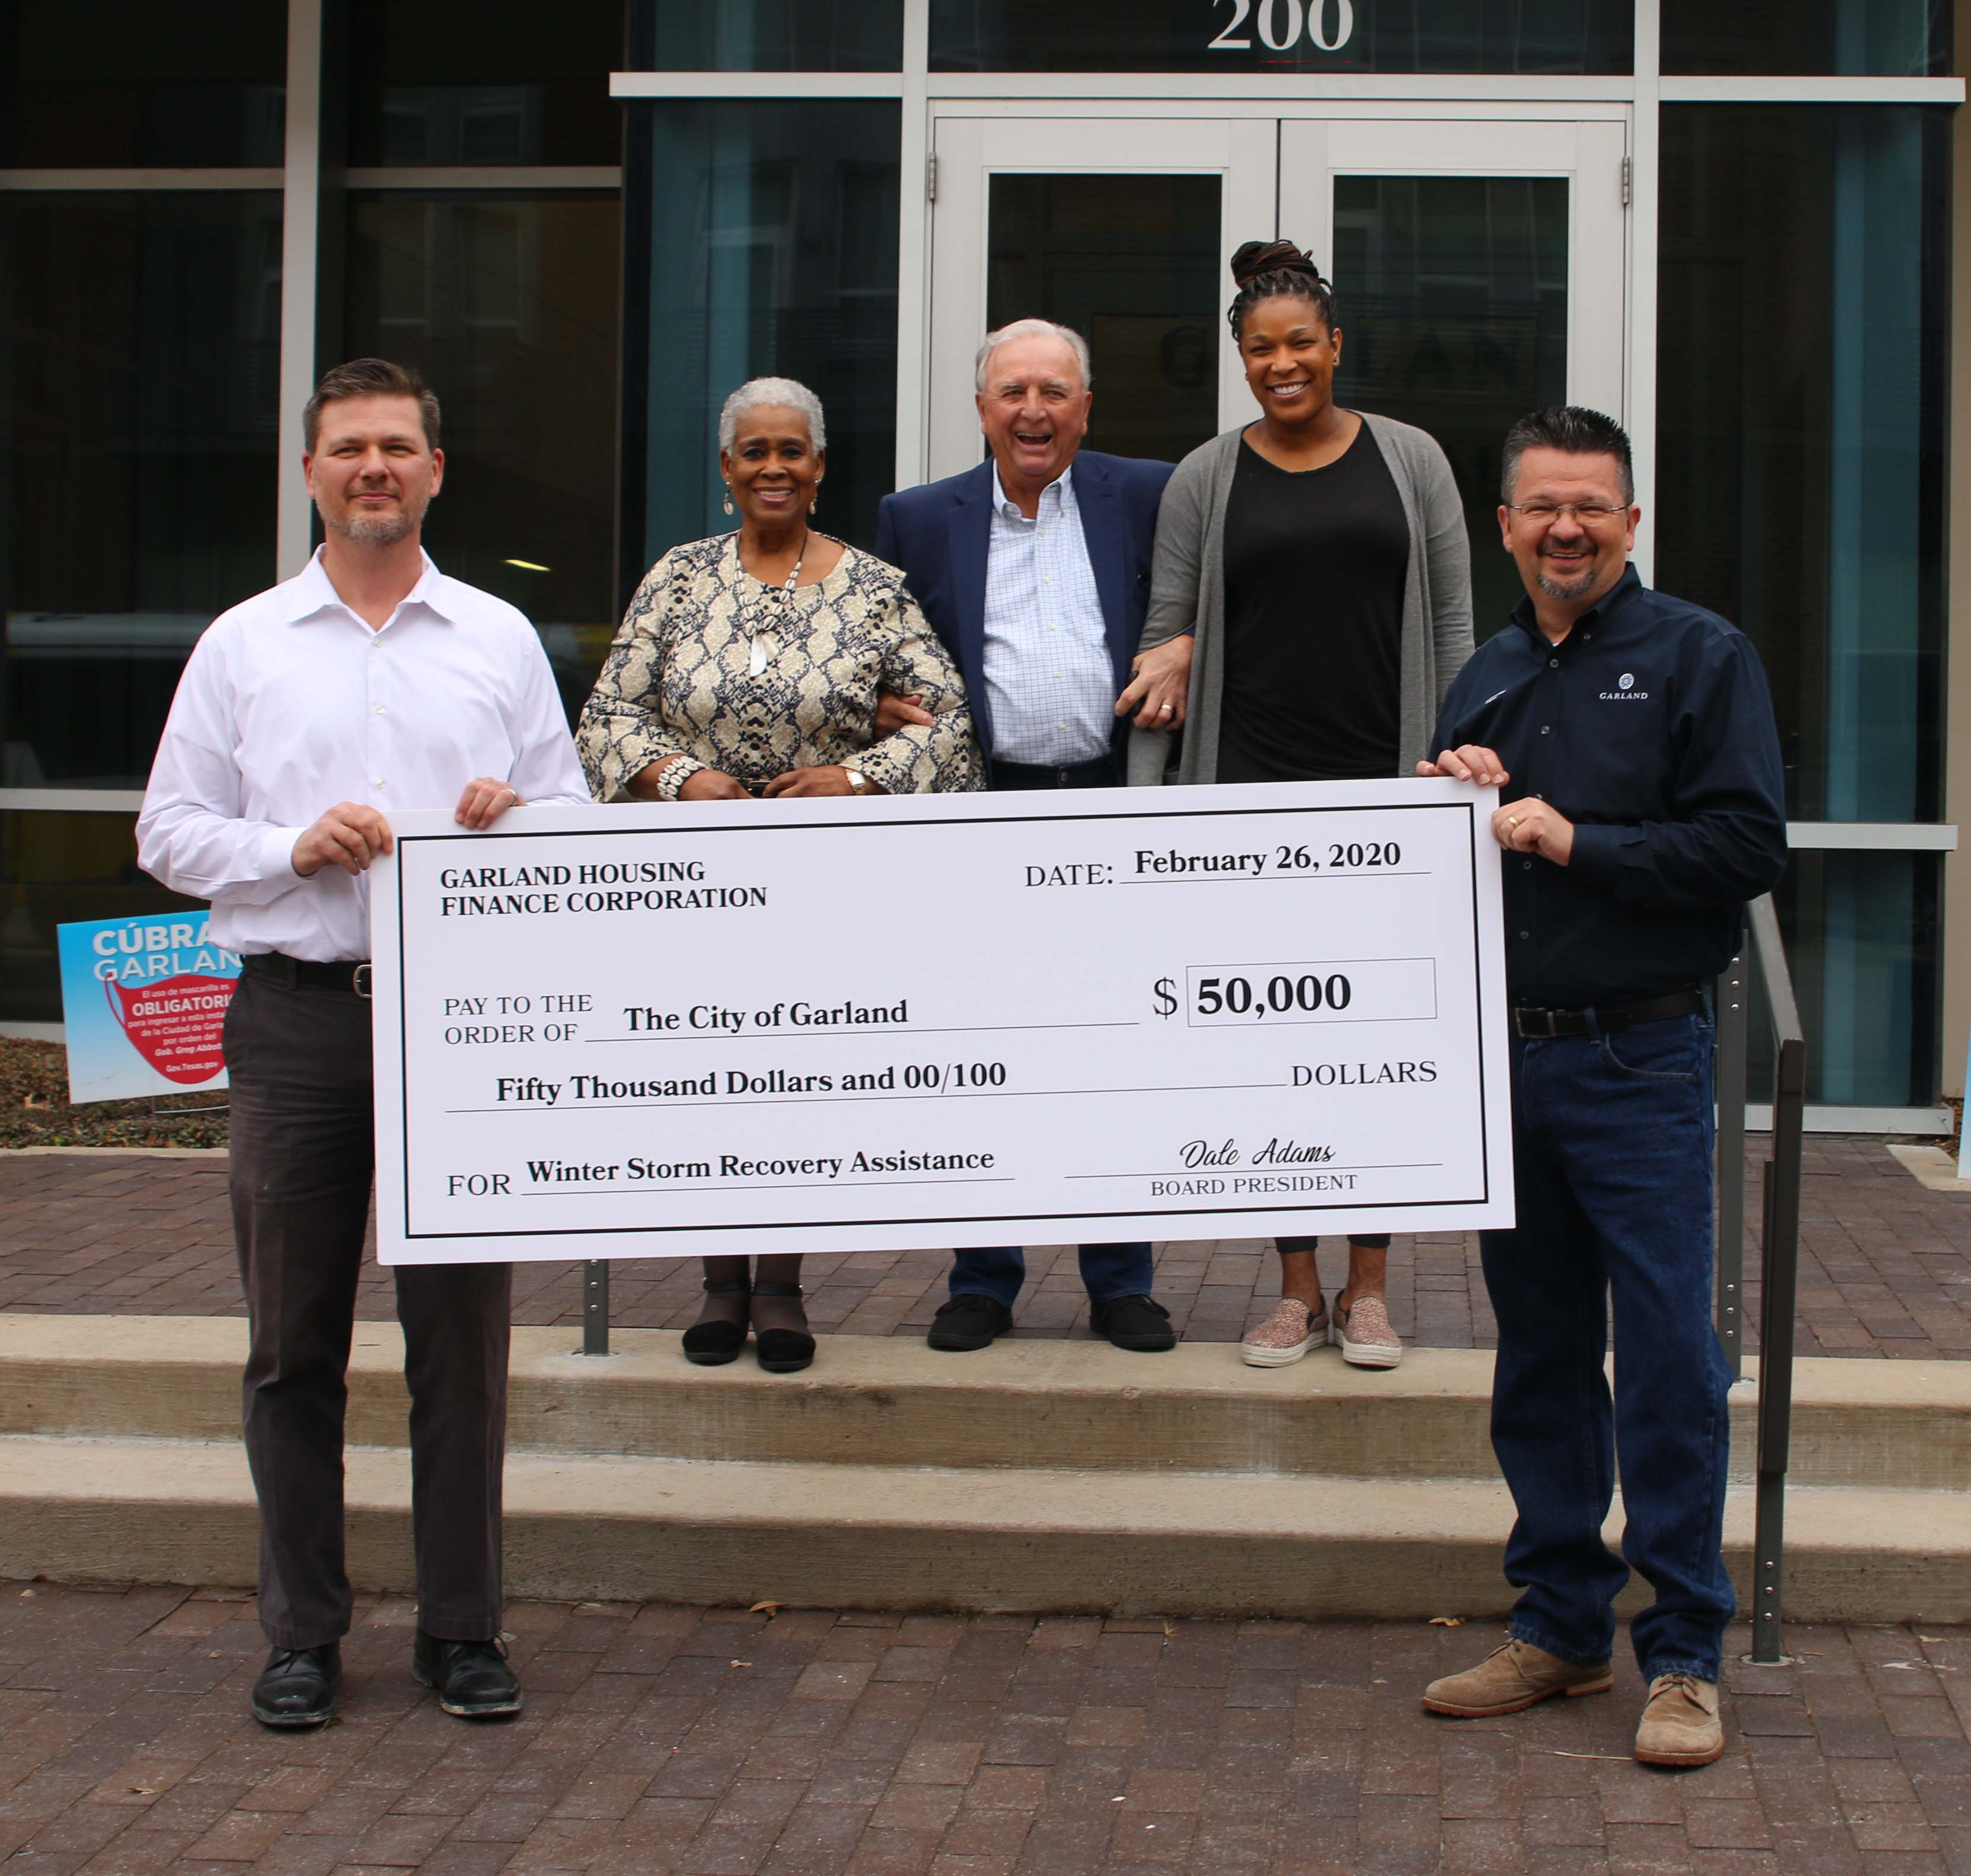 The Garland Housing Finance Corporation presented a $50,000 donation for winter storm relief.